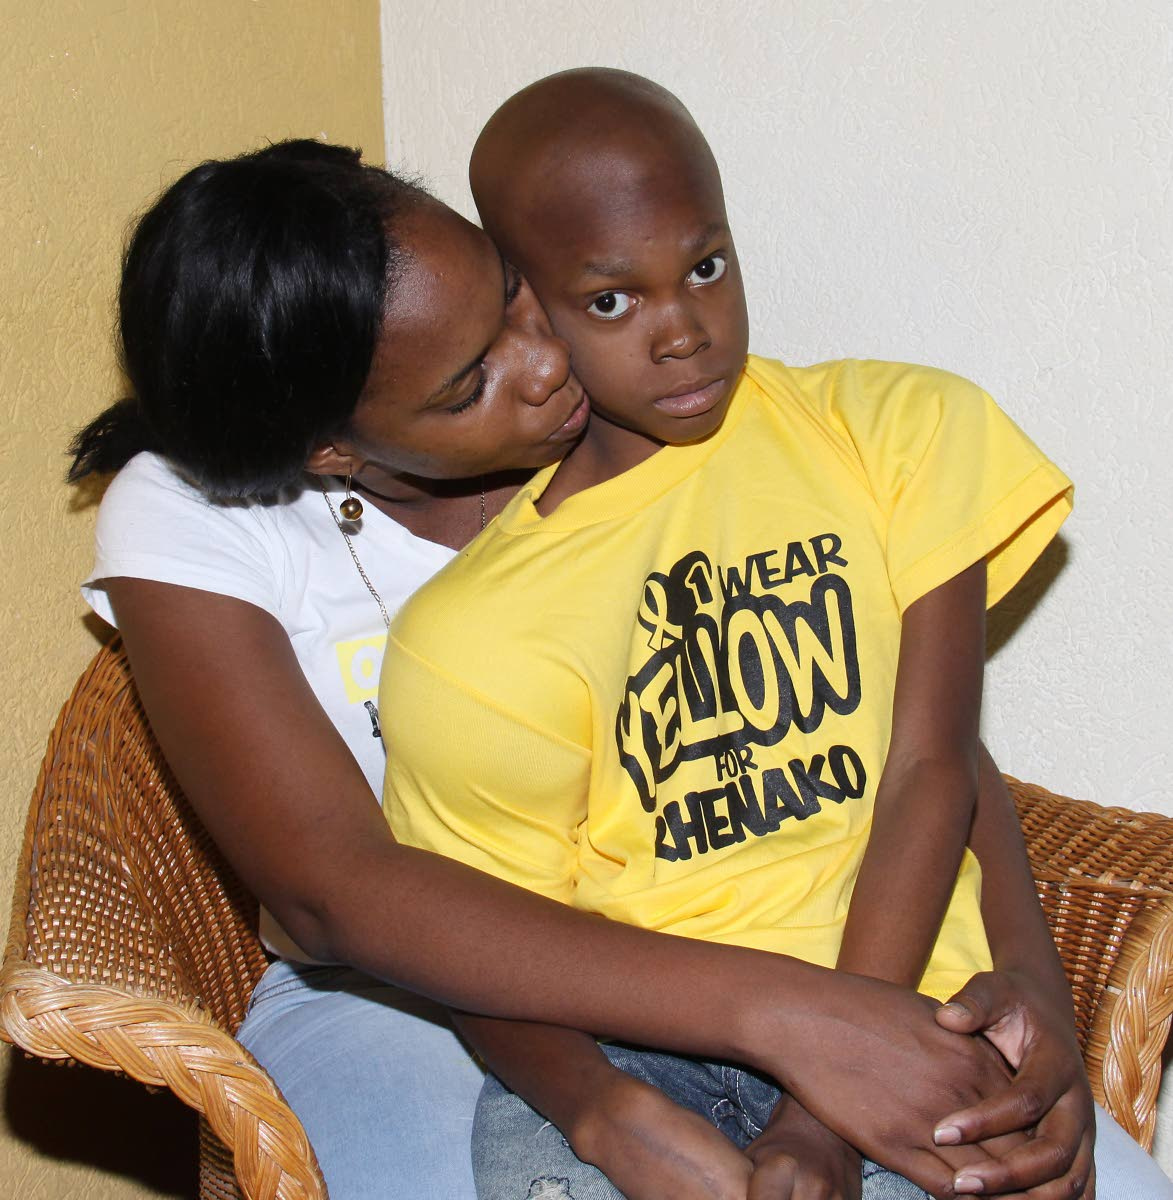 HOPE: Cancer patient Rhenako Beard, 10, and his mother,Tenisha Elder. PHOTO BY ANGELO MARCELLE.